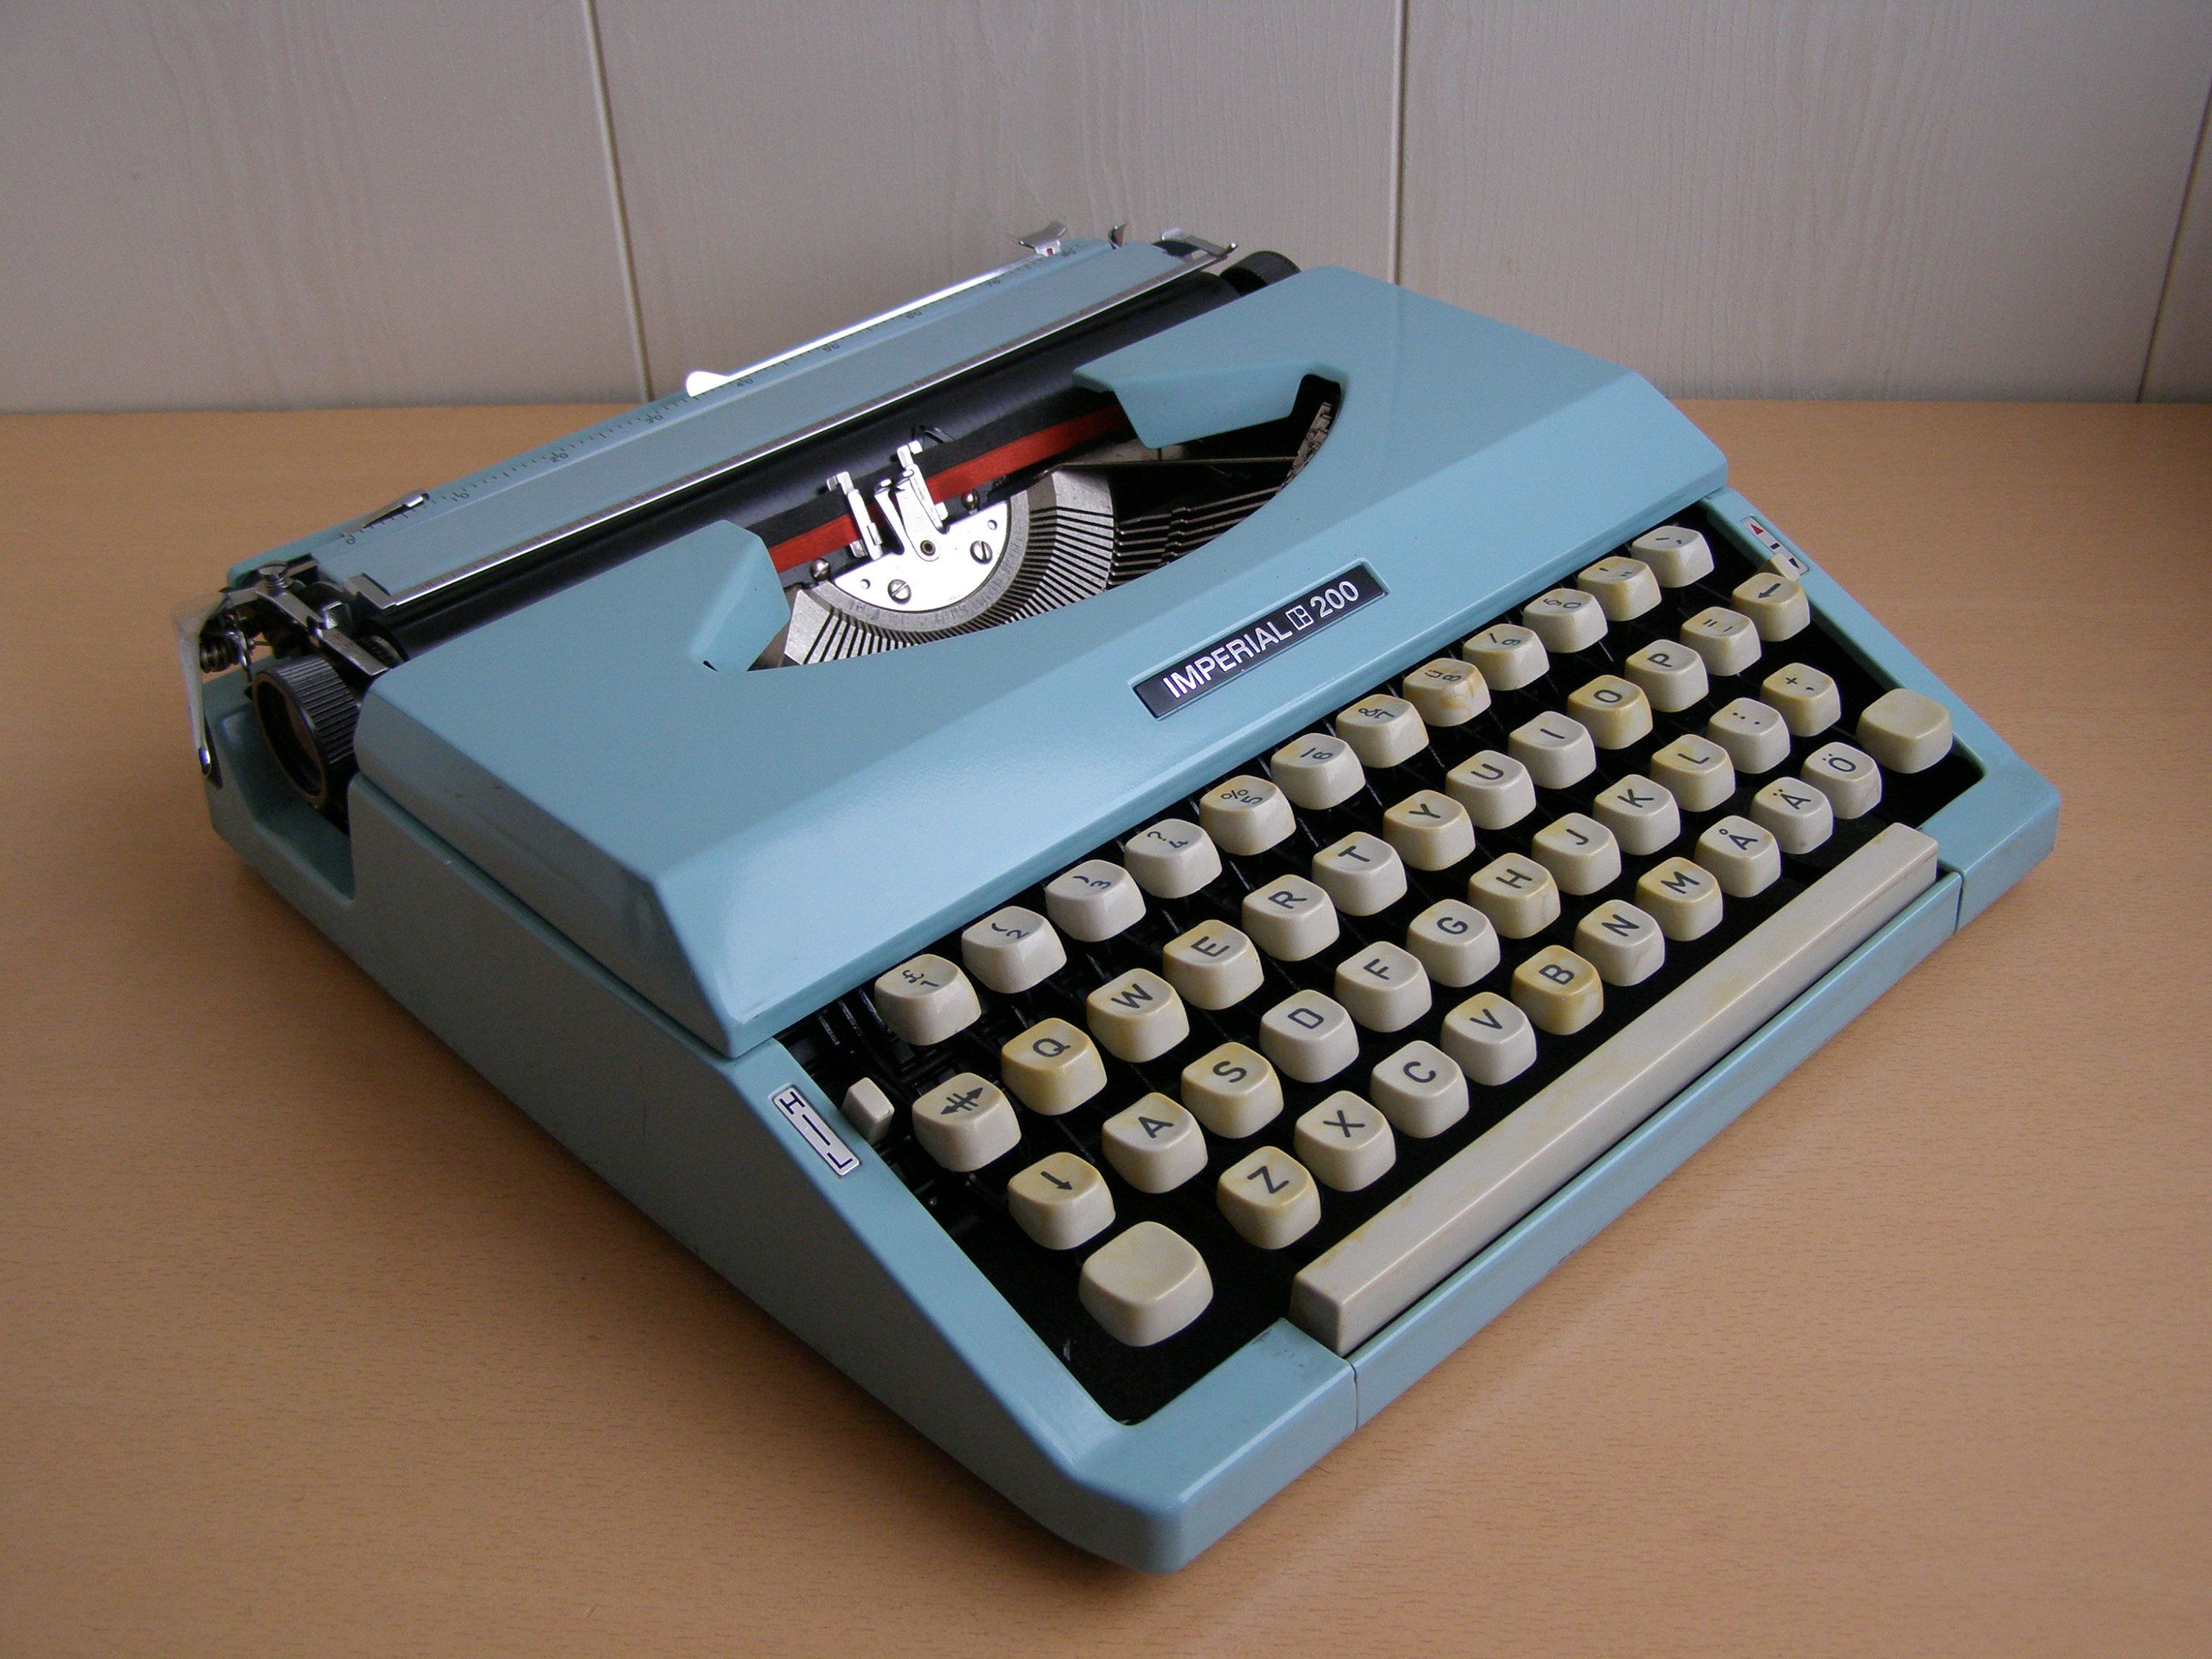 1970s Imperial 200 Japan Typewriter Qwerty Keys Portable Typewriter Manual Typewriter Vintage Office Aqua Blue Typewriter With Case By Vintageretroest On E